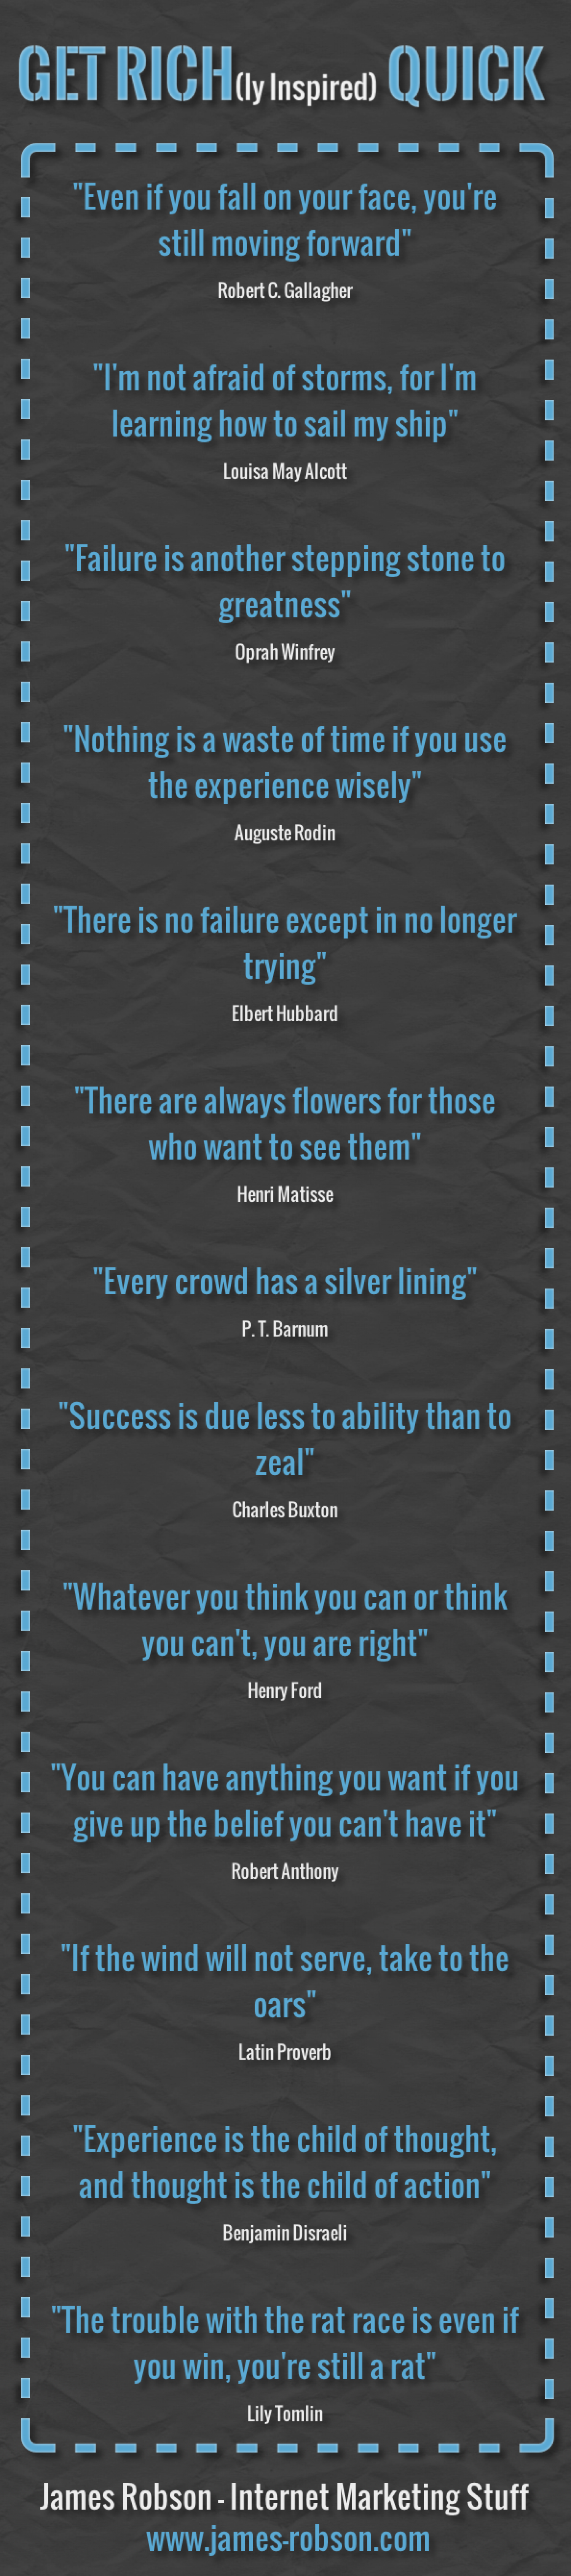 Get Rich(ly Inspired) Quick - Inspirational Quotes For Entrepreneurs Infographic